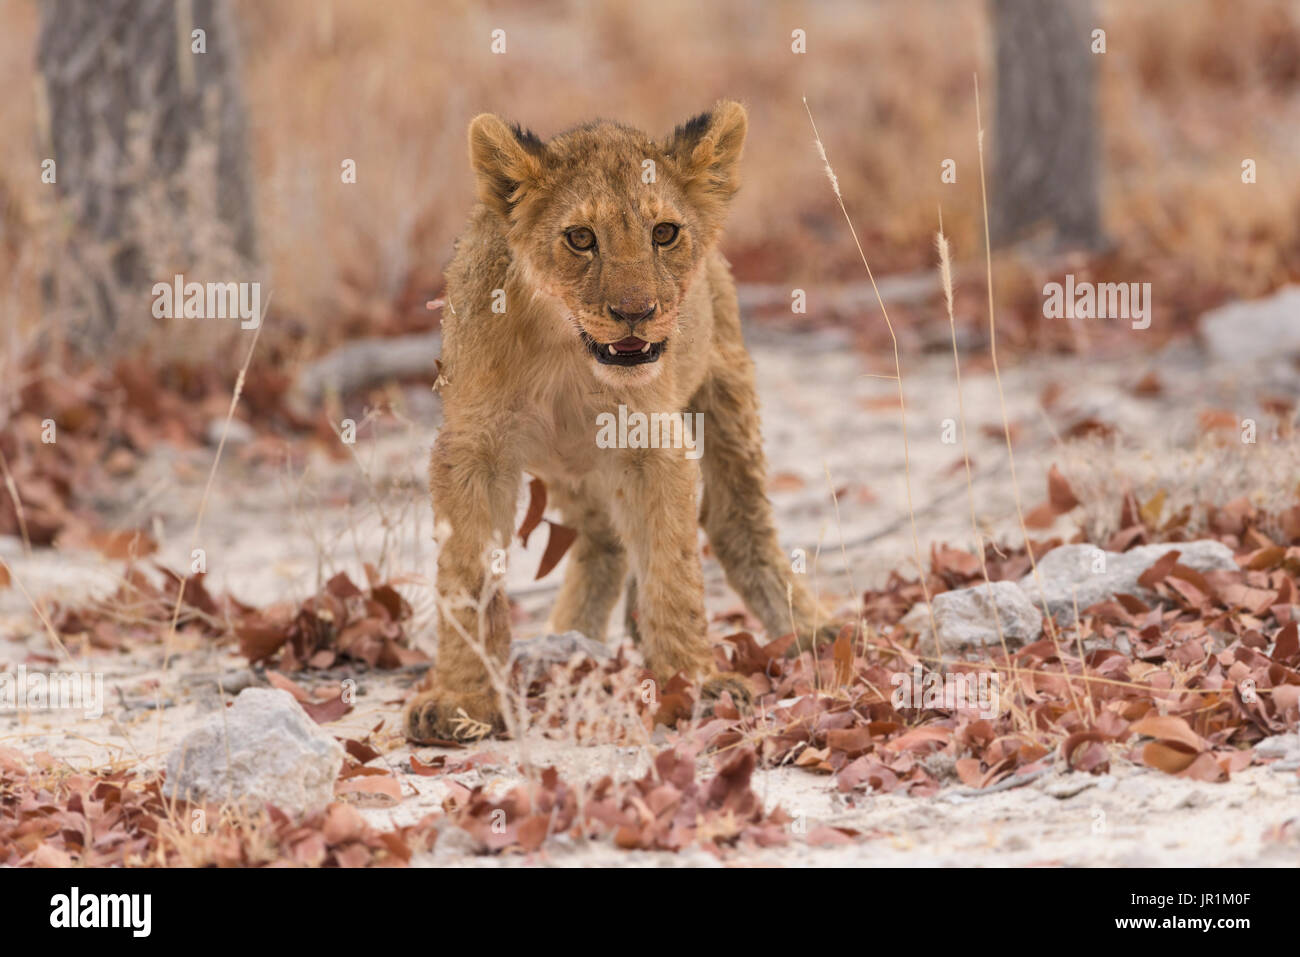 Lion (Panthera leo), cub, Namibia, Etosha national Park - Stock Image